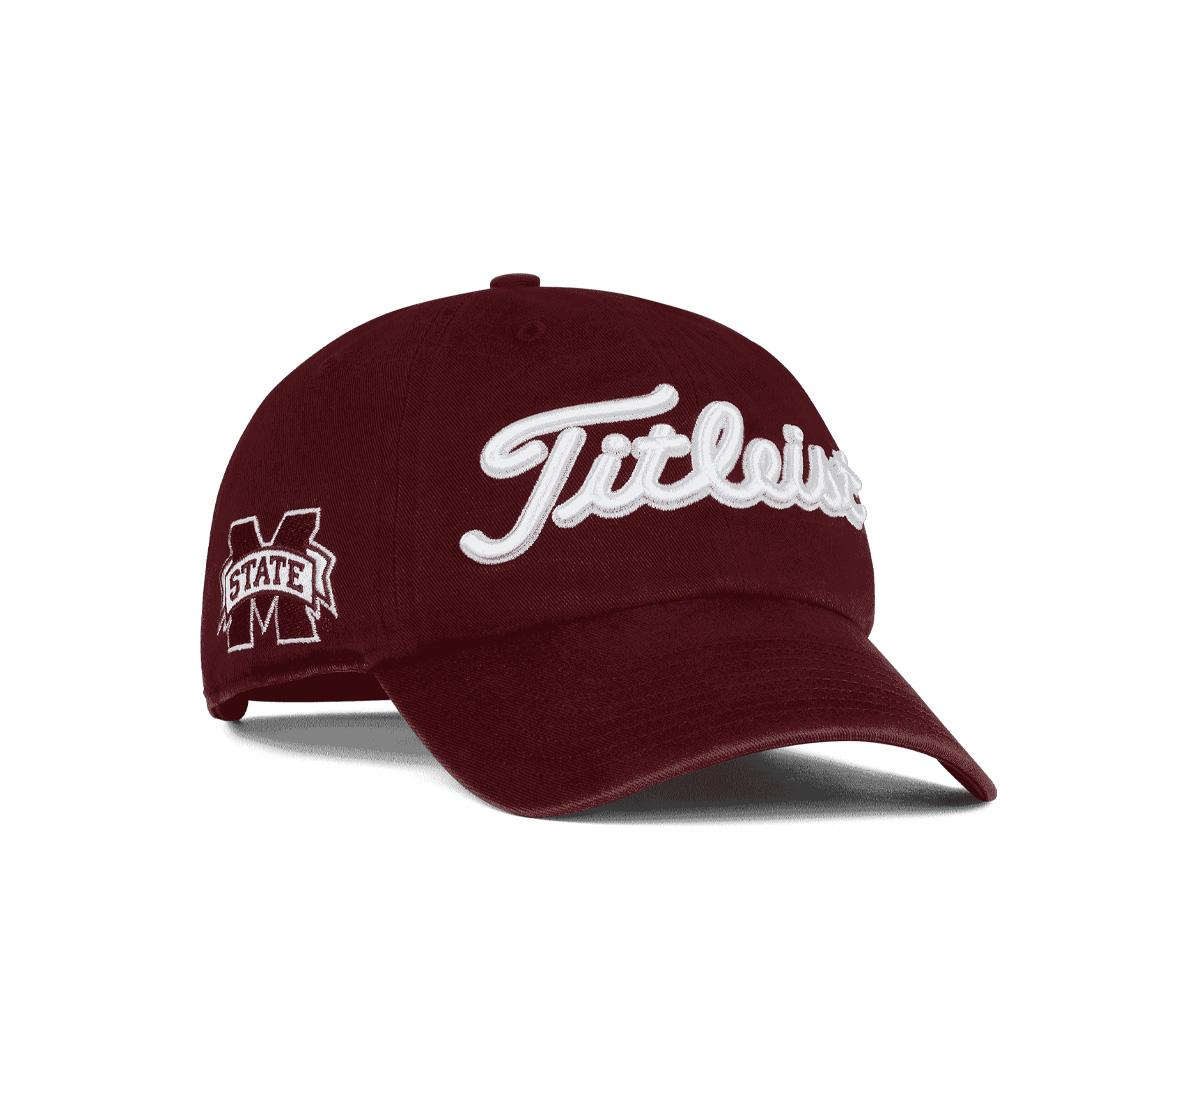 Titleist Mississippi State Garment Wash